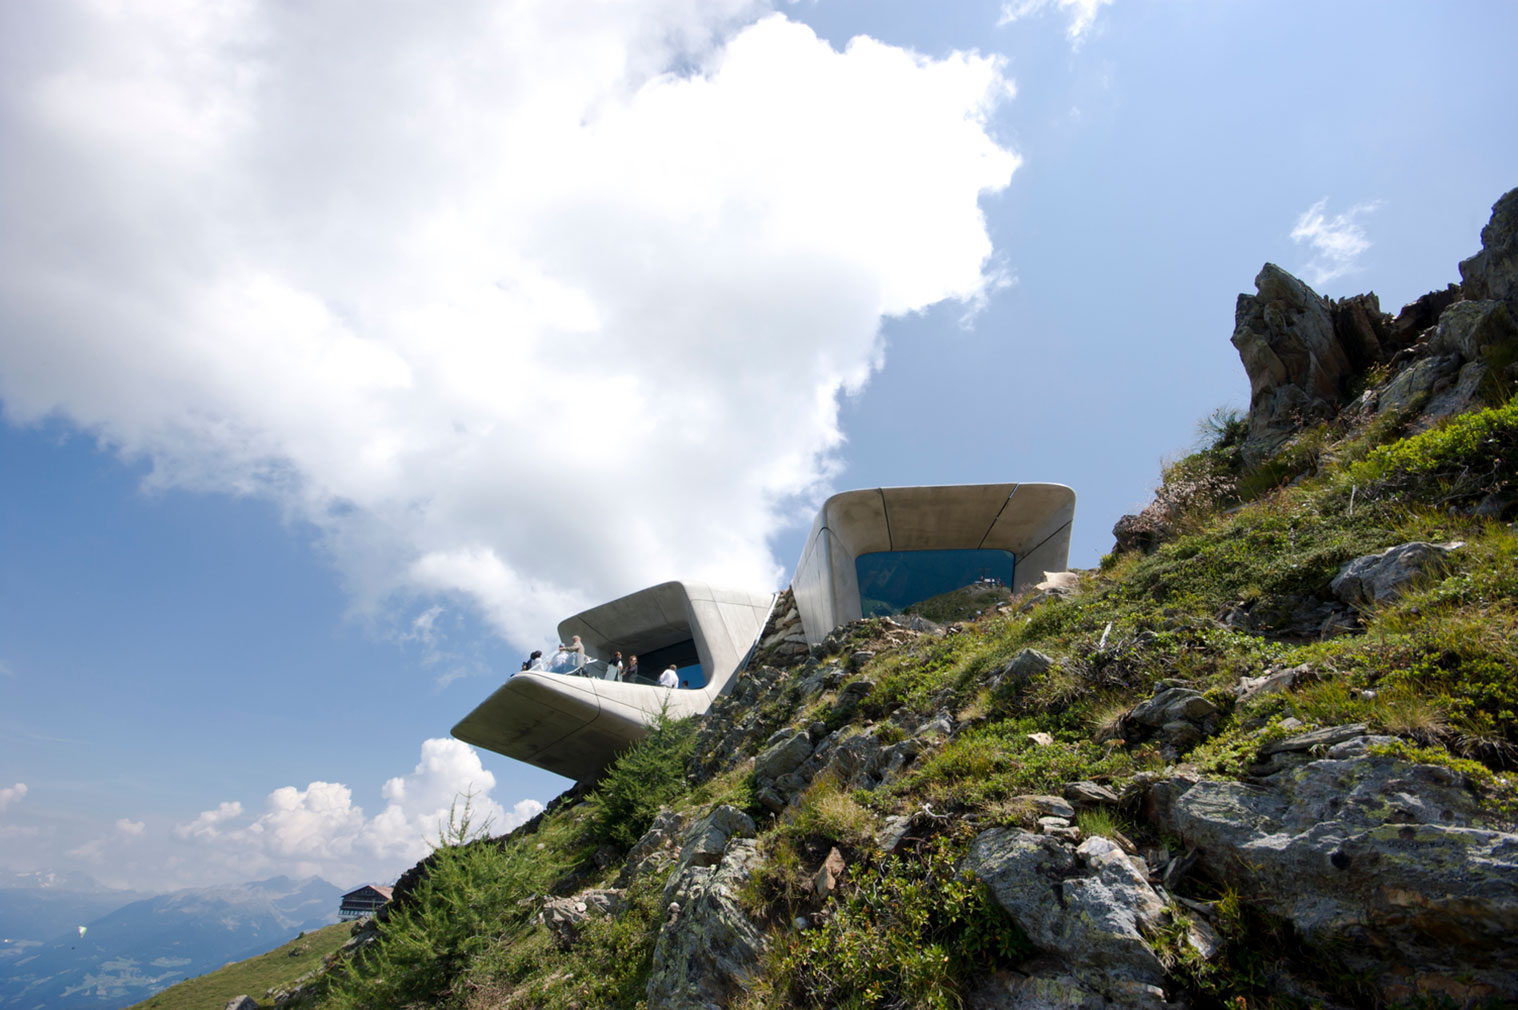 Zaha Hadid's Messner Mountain Museum